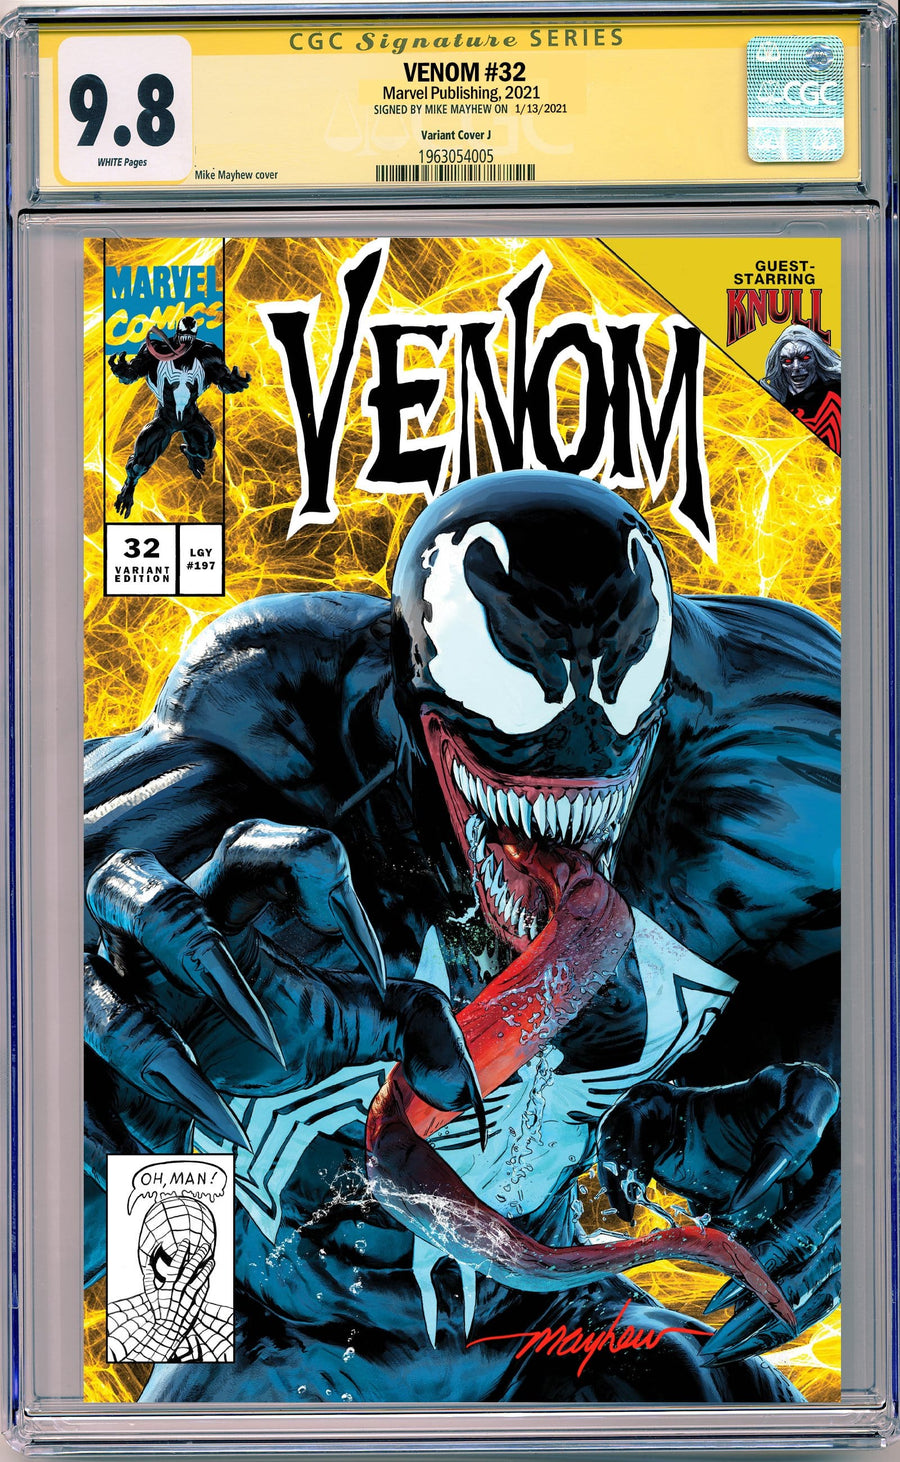 VENOM #32 MIKE MAYHEW STUDIO EXCLUSIVE VARIANTS CGC SIG SERIES 9.6 AND ABOVE OPTIONS